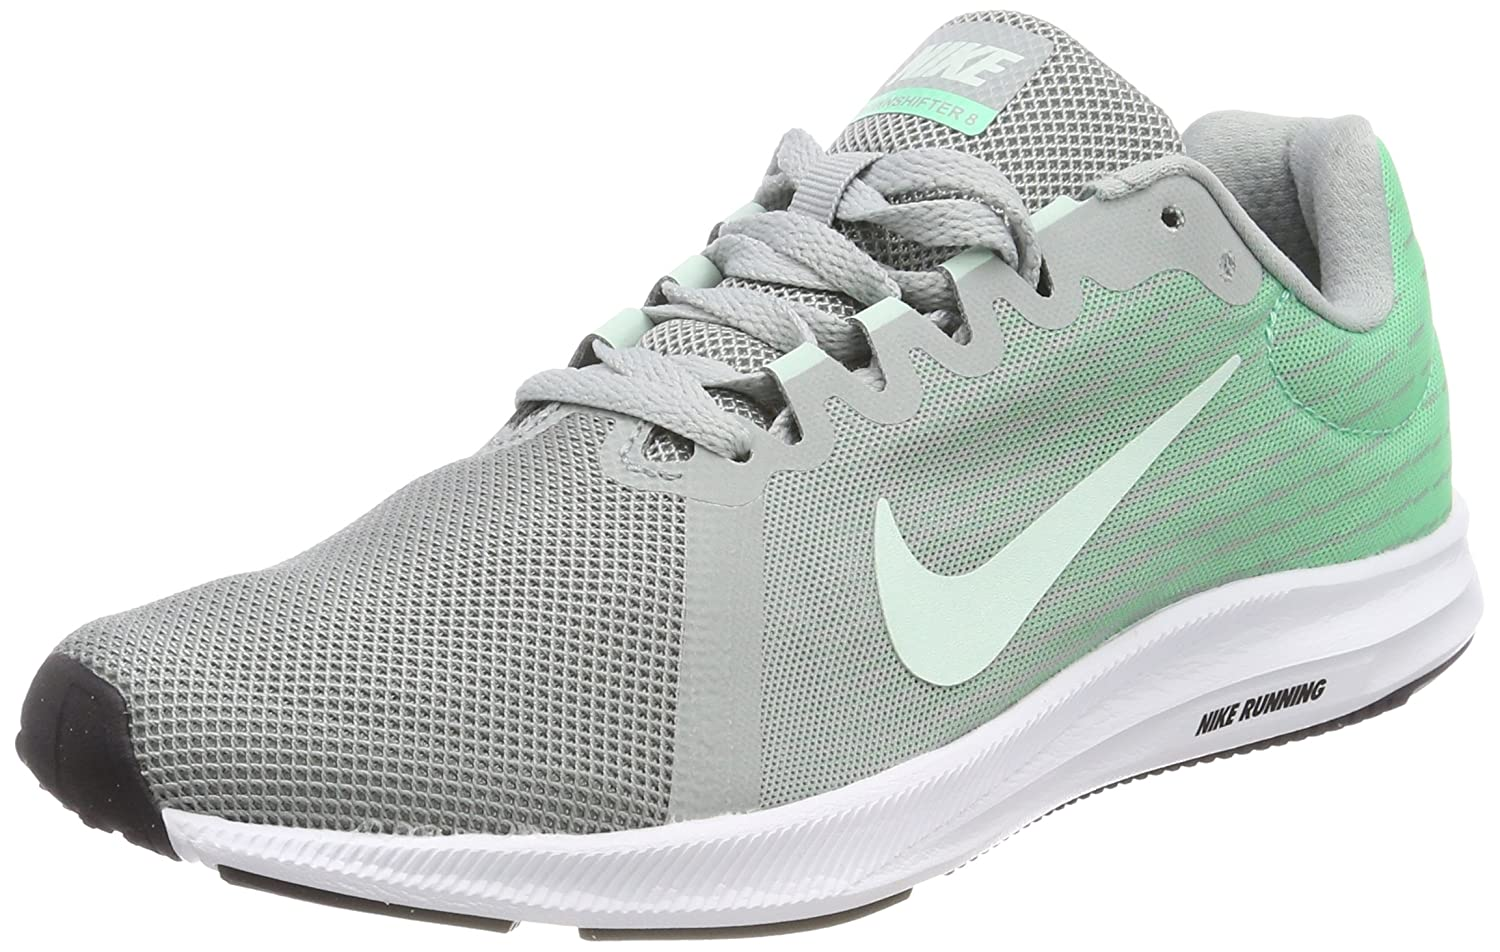 NIKE Women's Downshifter 8 Running Shoe B0761YX77N 7.5 B(M) US|Light Pumice/Igloo/Green Glow/White